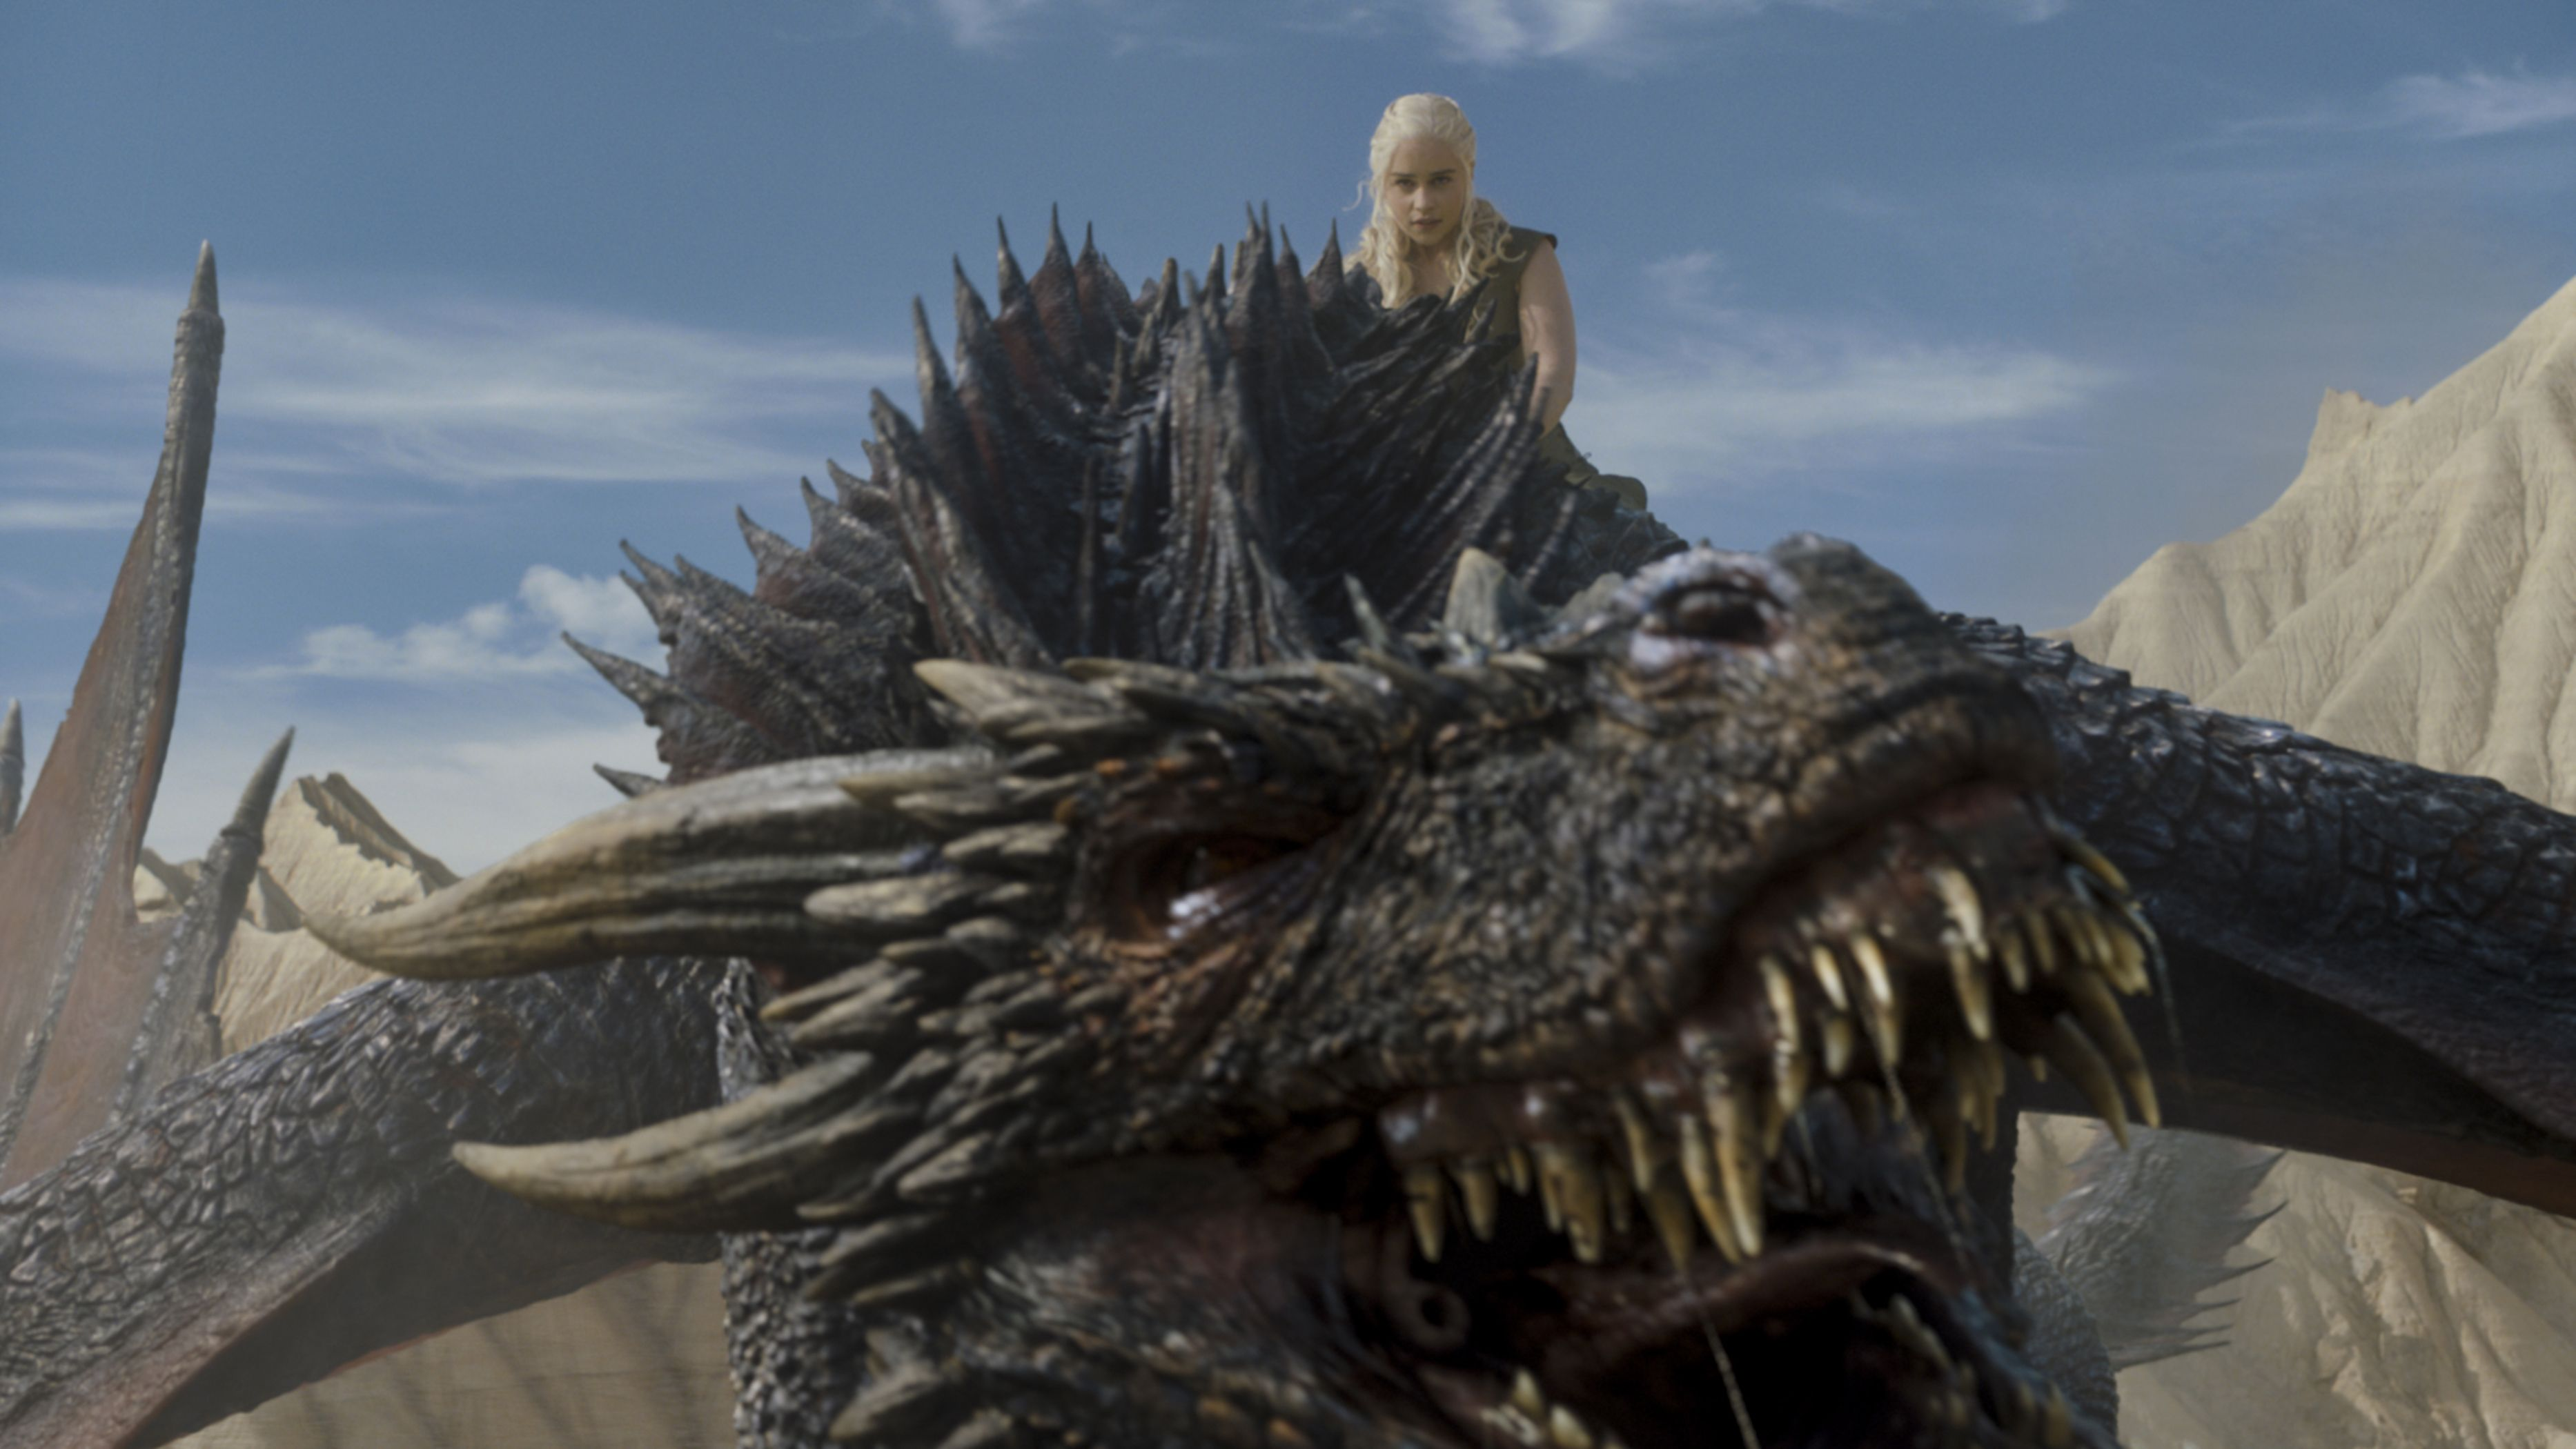 The Second Game of Thrones Prequel Series Will Have All the Dragons Fans Crave